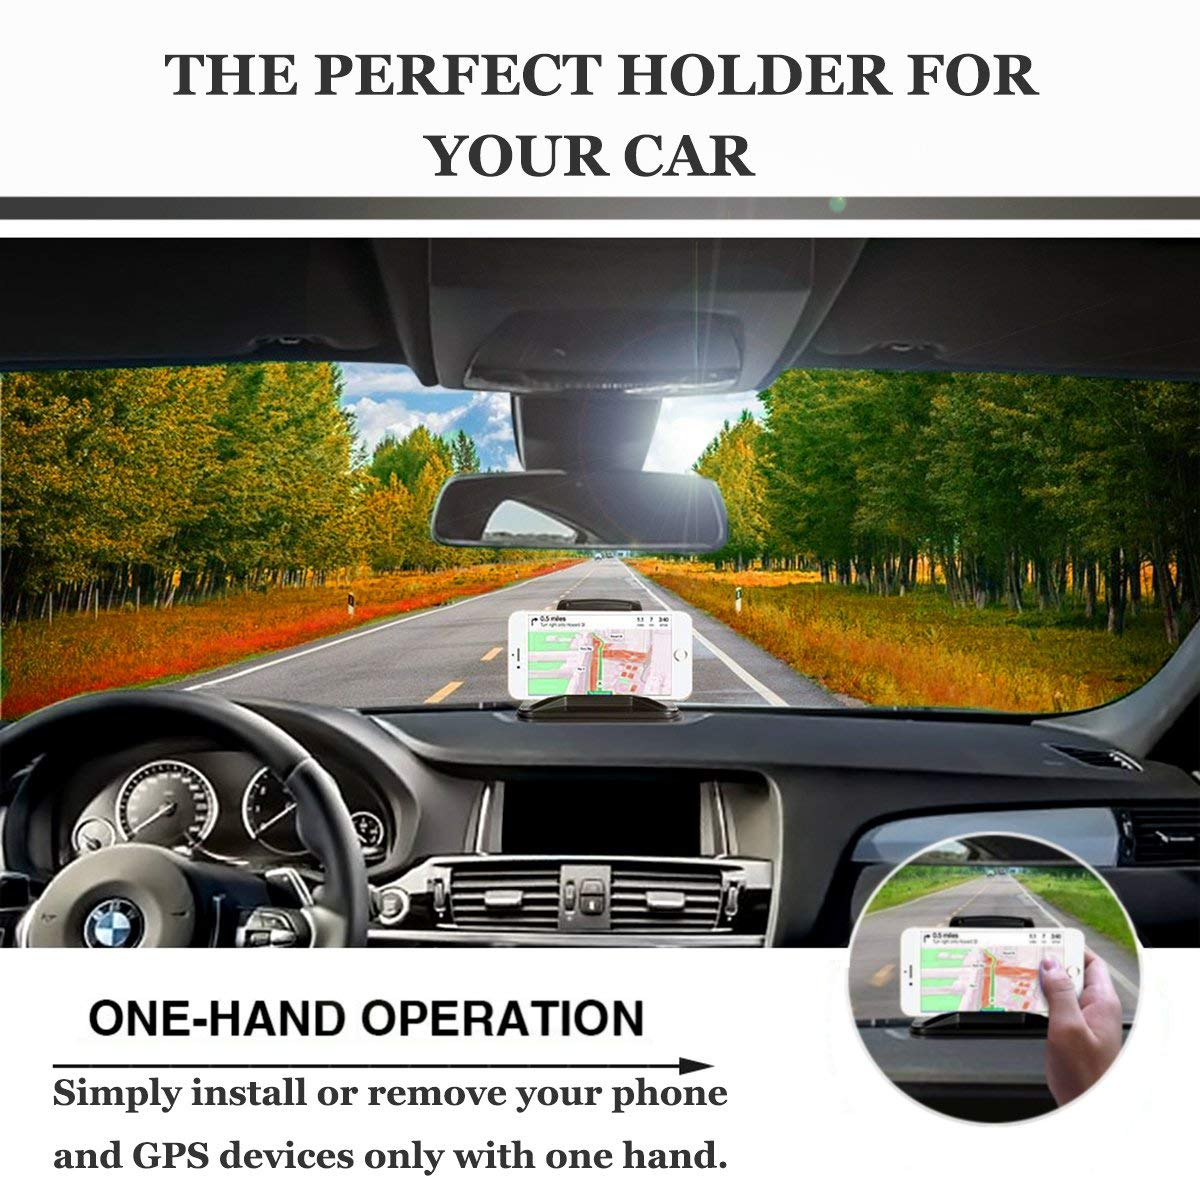 Cell Phone Holder for Car, Non-Slip Dash Pad Car Phone Mount GPS Holder for iPhone 7 Plus 8 Plus X Samsung Galaxy Note 8 S8 Plus S7 and 3-7 inch Smartphones (Black)